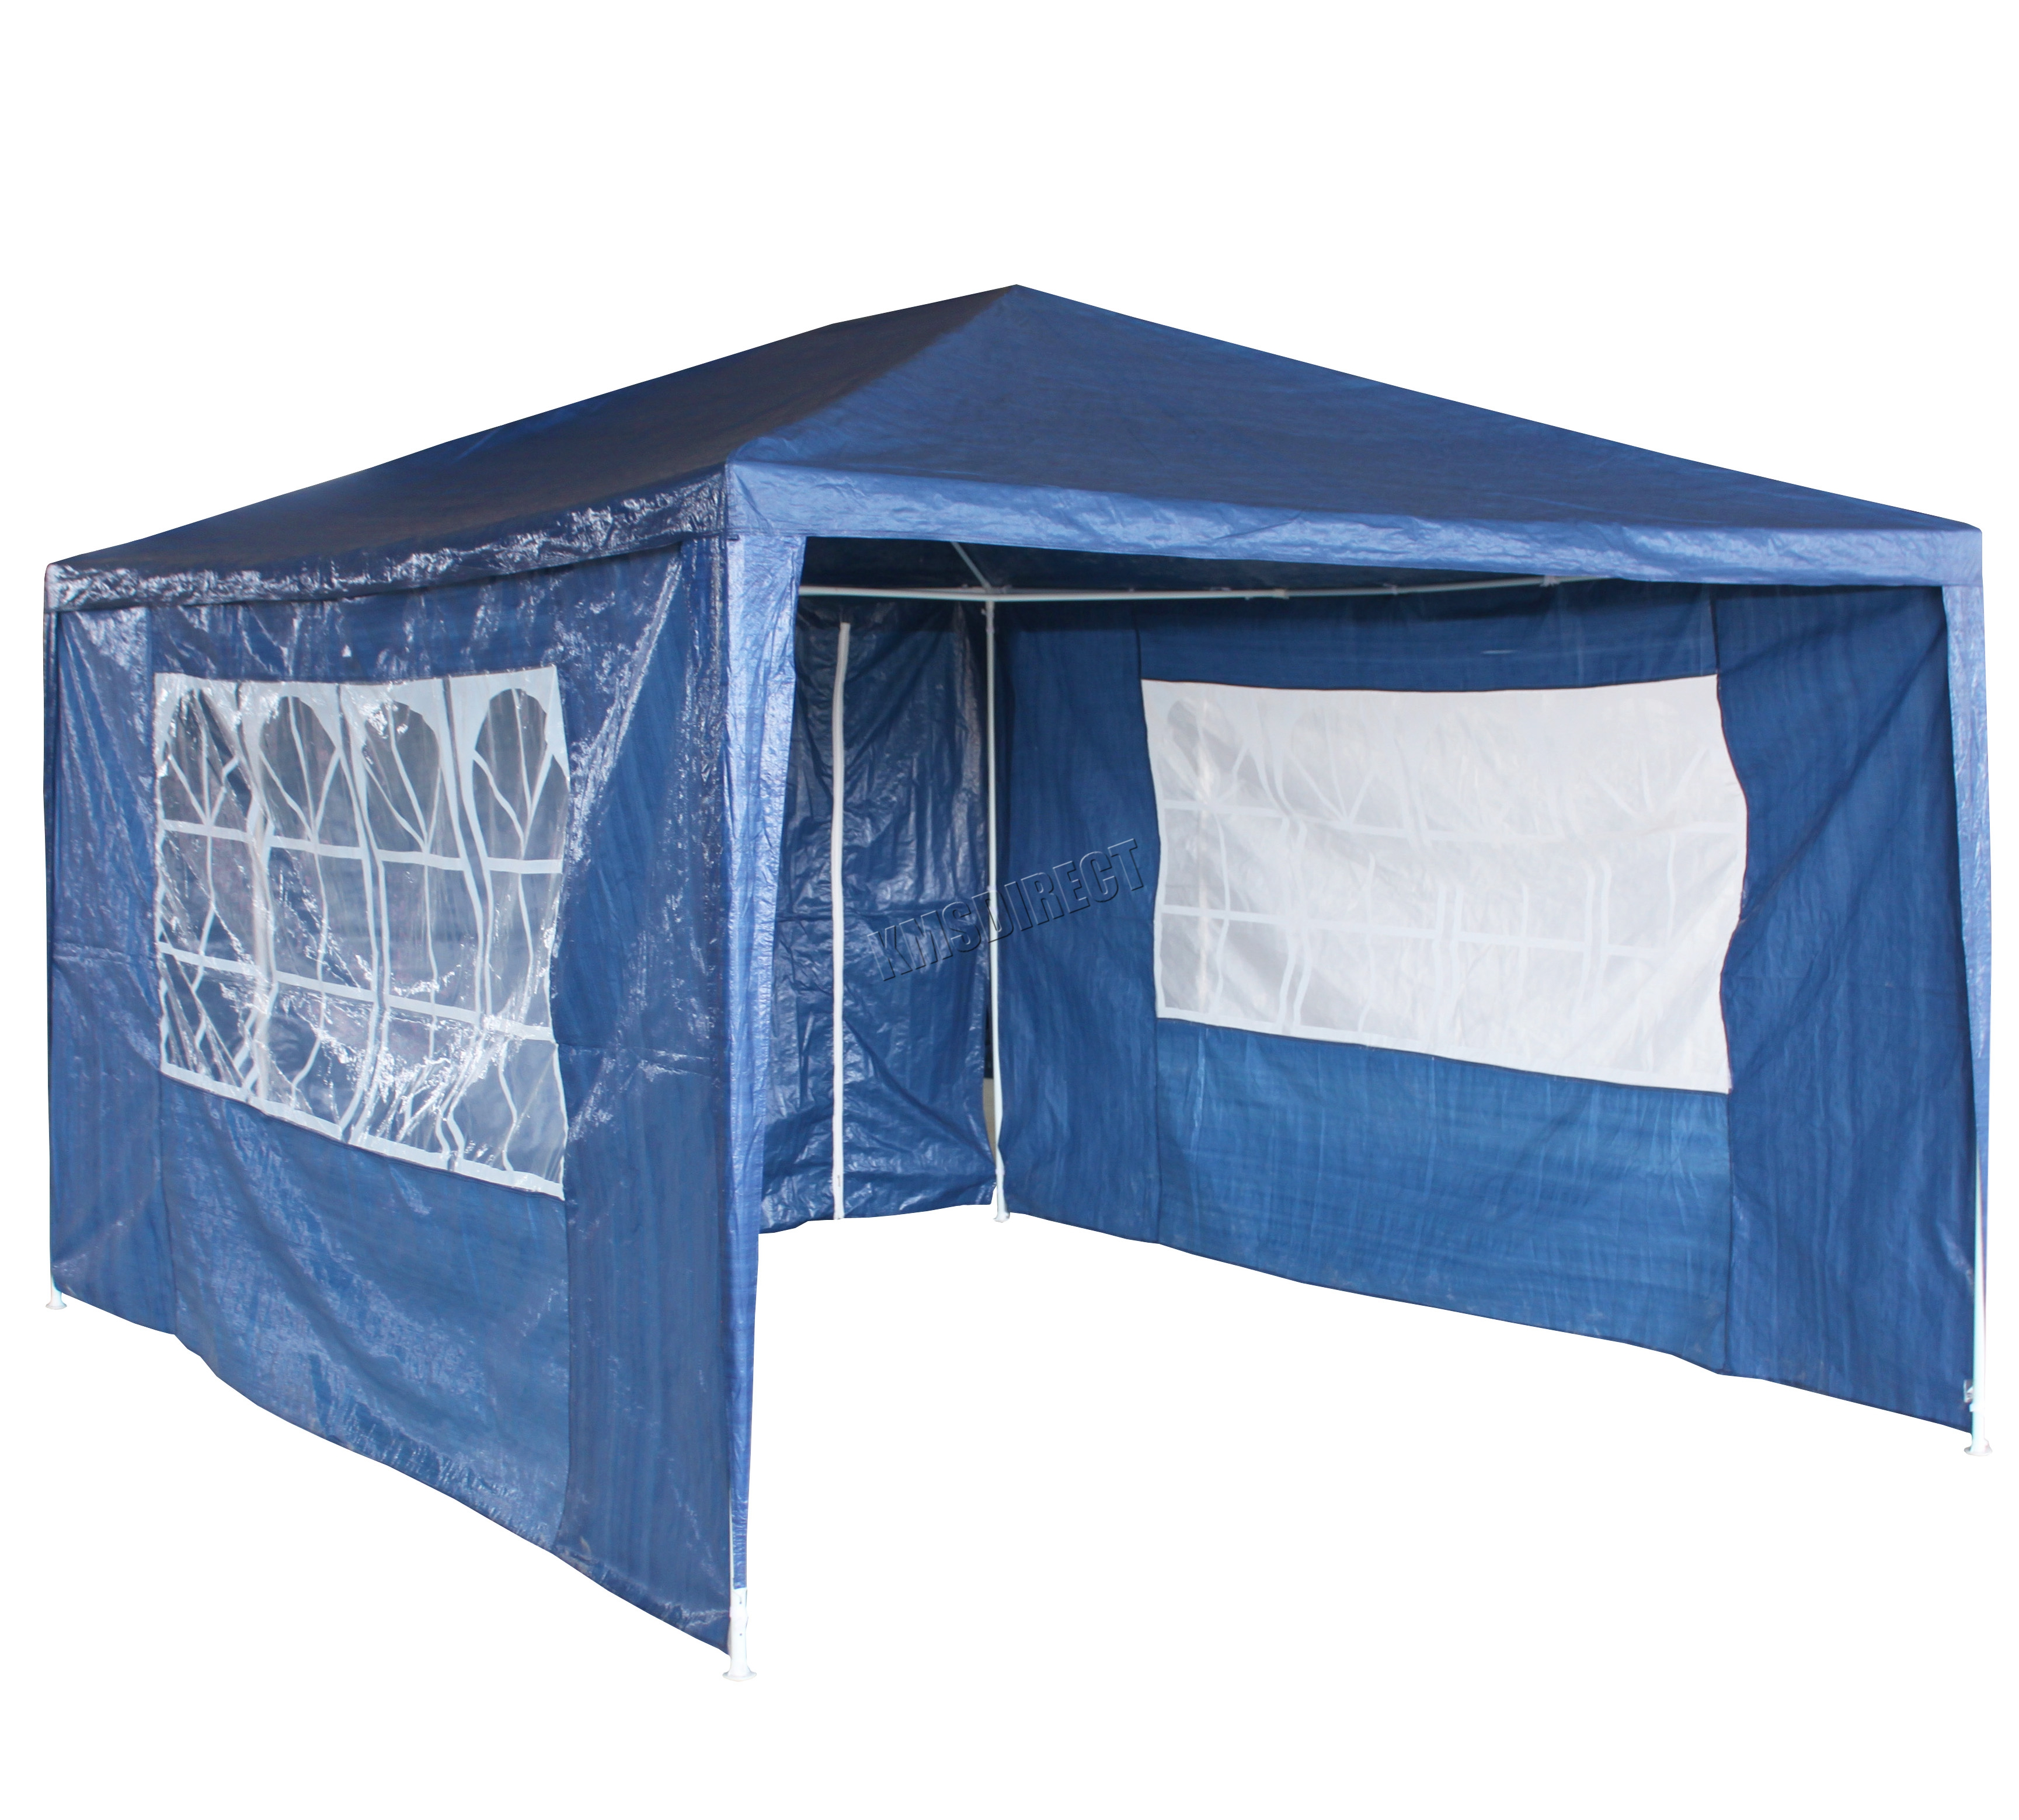 Garden gazebo 3 x 4m - Sentinel Waterproof Blue 3m X 4m Outdoor Garden Gazebo Party Tent Marquee Awning Canopy Sentinel Thumbnail 3